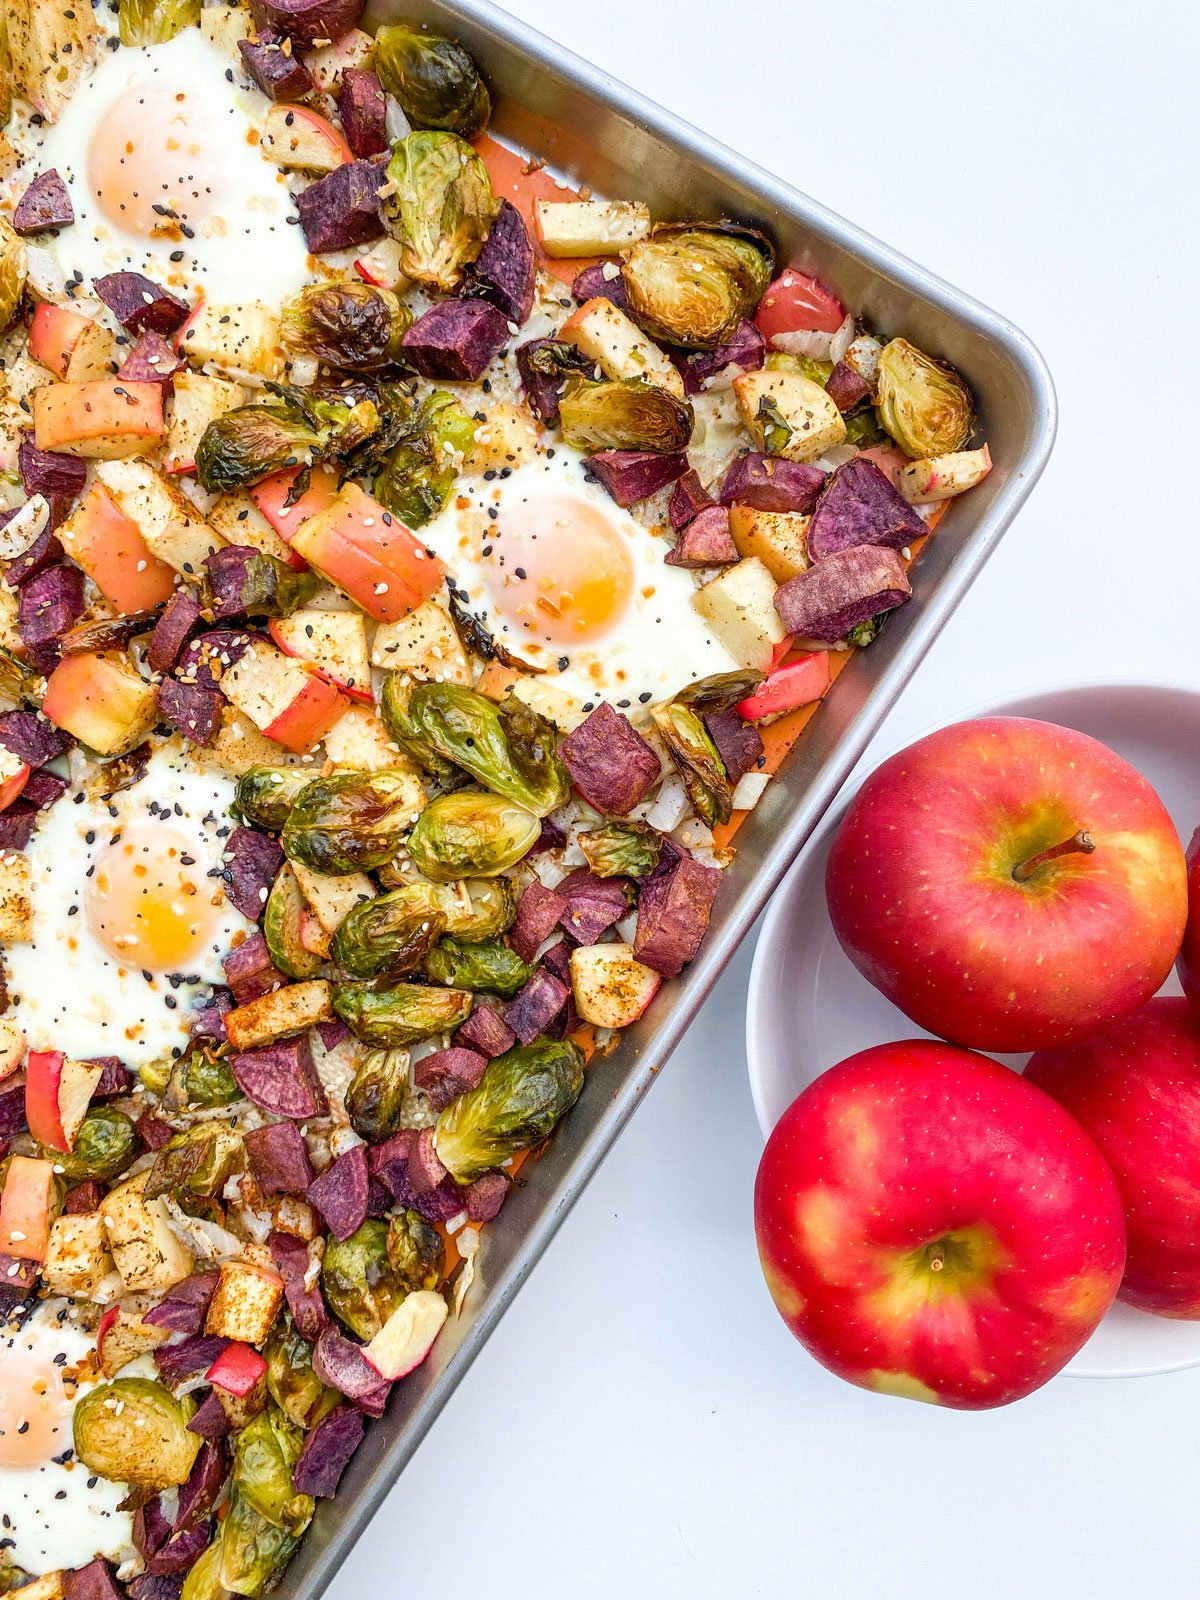 Recipe Photo - Sheet Pan Breakfast Hash with Yes! Apples